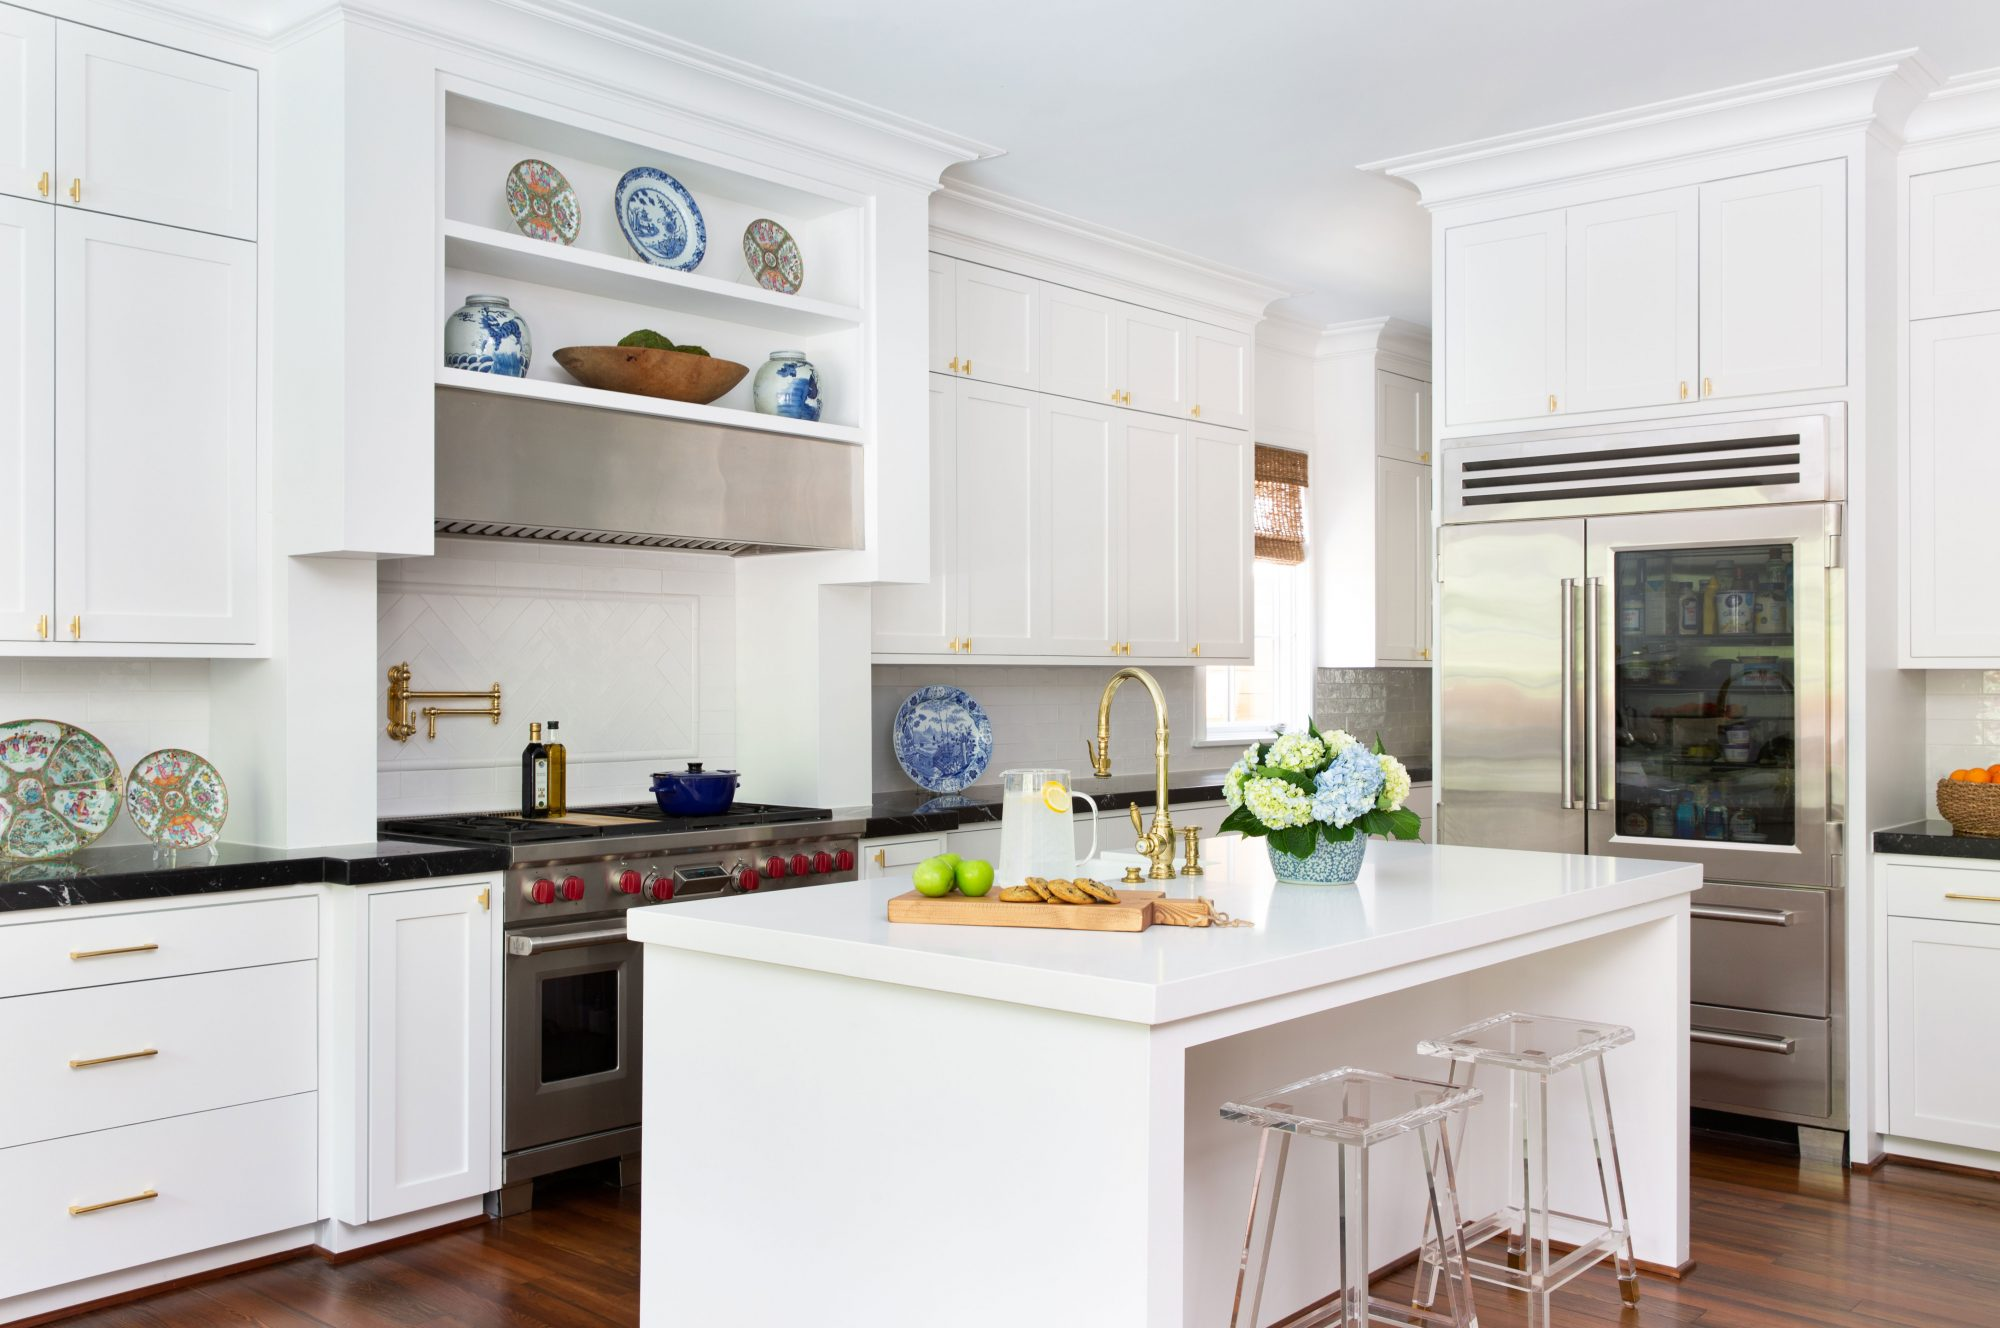 White Kitchen Painted Alabaster by Sherwin Williams